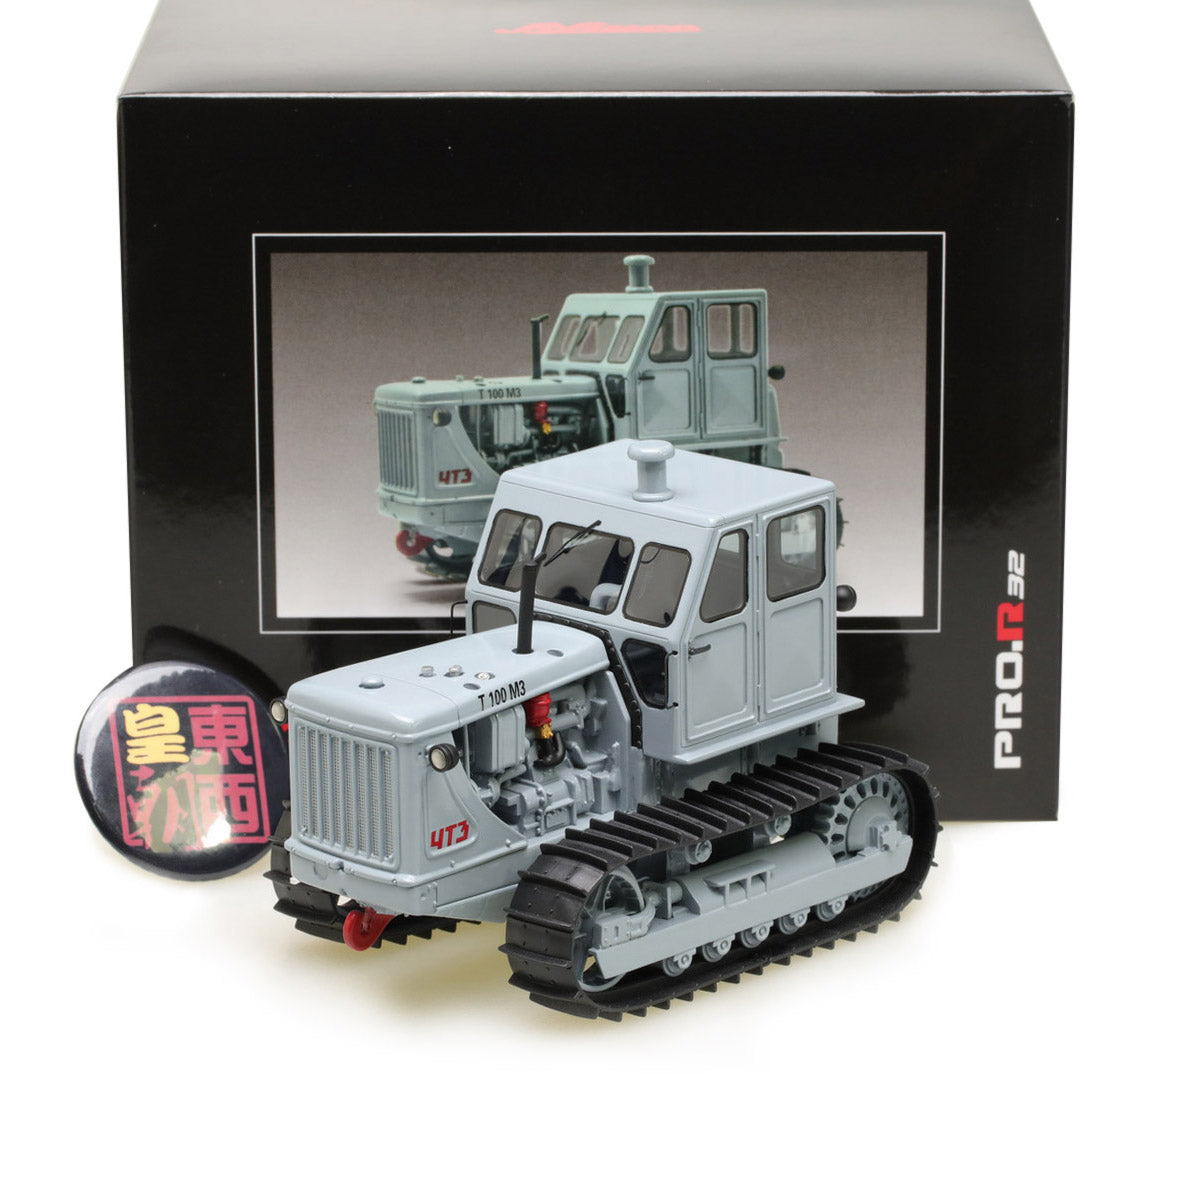 SCHUCO 1:32 Crawler tractor T100 M3 Resin Model Tractor 450901800